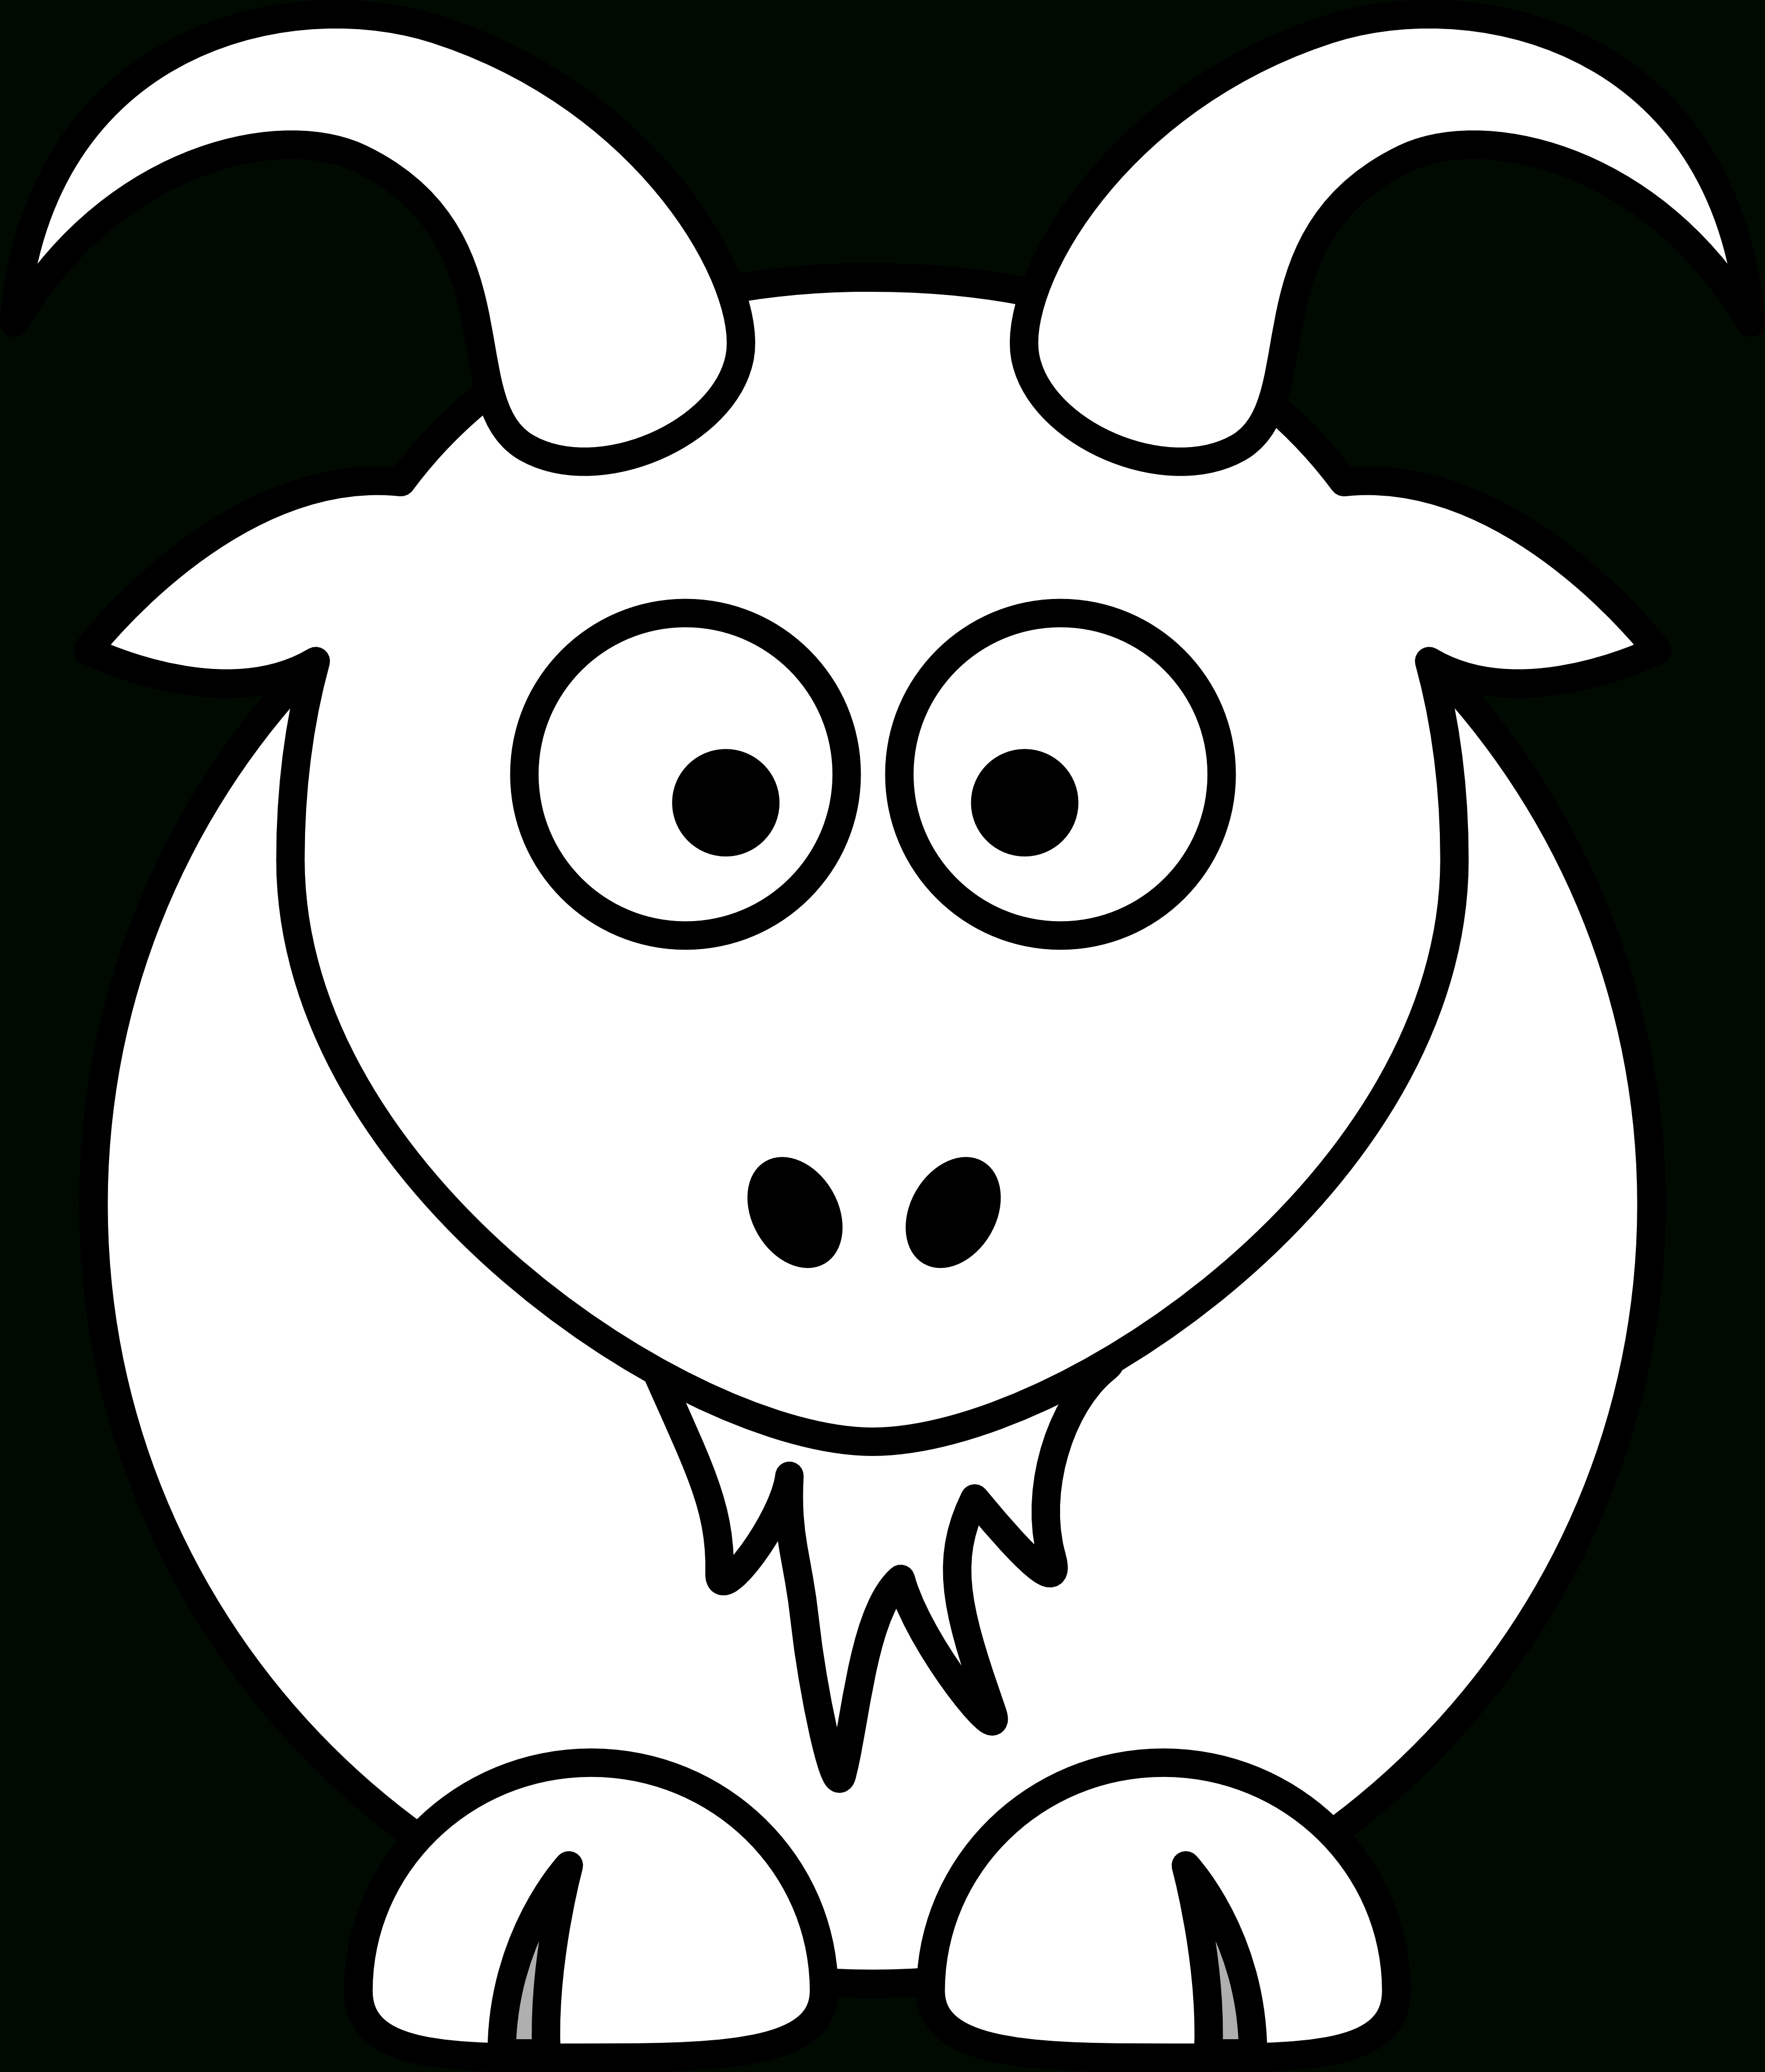 goat picture cartoon leicester longwool goat cartoon png clipart black black cartoon goat picture